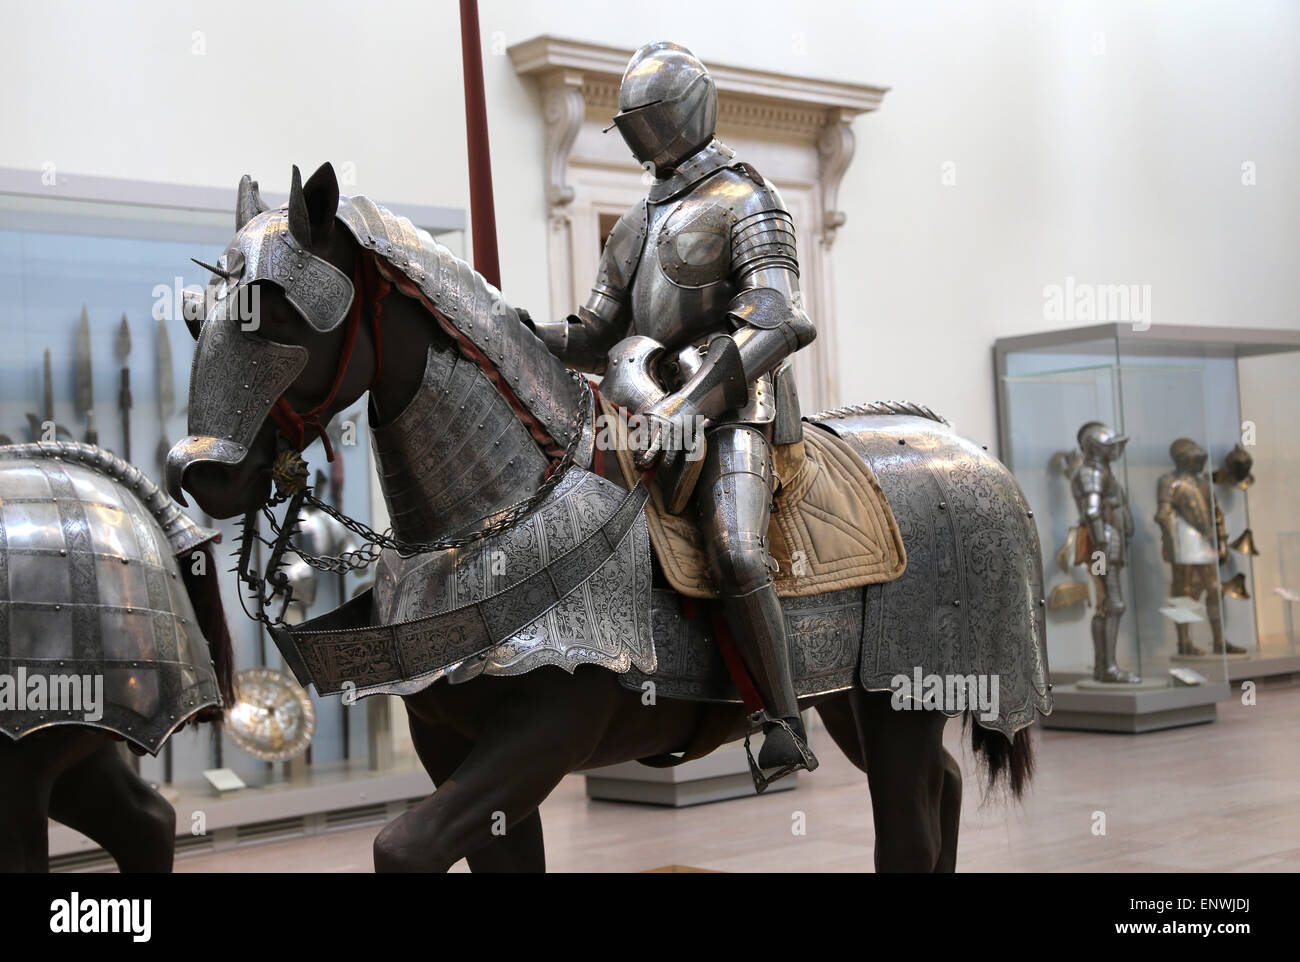 Armor for combat. Plate armour for man and horse. Europe. Metropolitan Museum of Art. New York. USA. - Stock Image